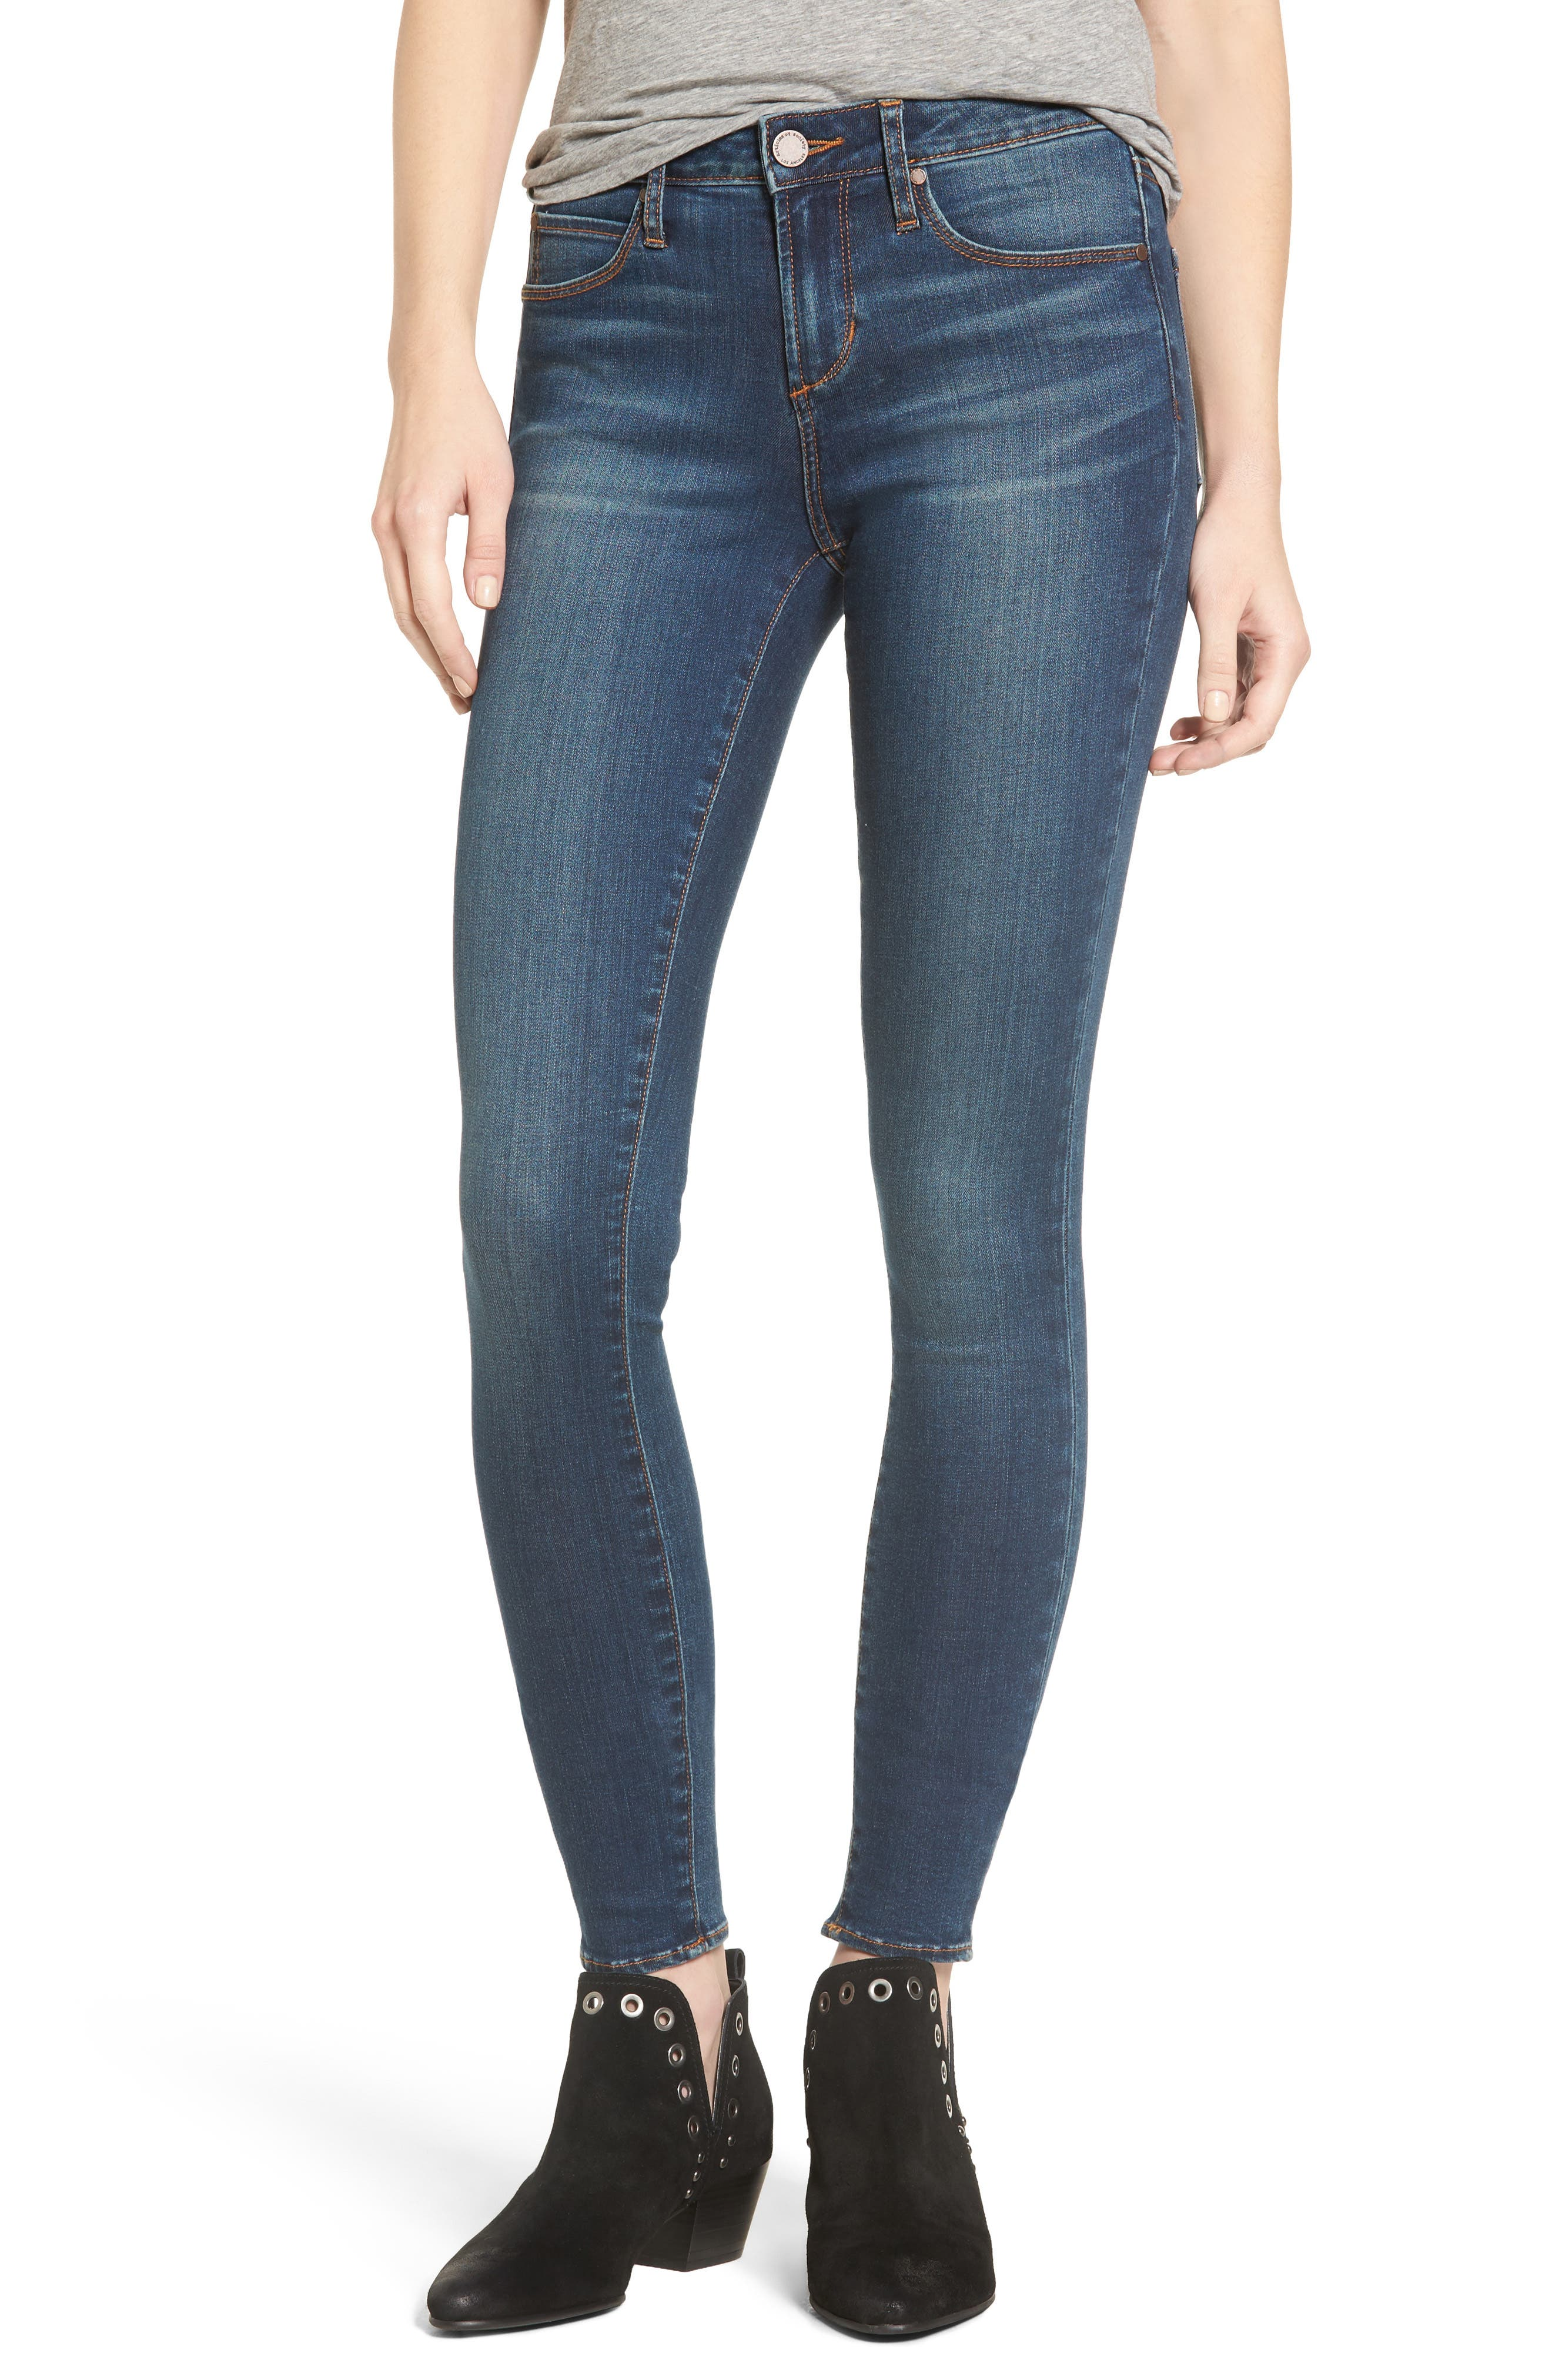 ARTICLES OF SOCIETY, Mya Skinny Jeans, Main thumbnail 1, color, 499